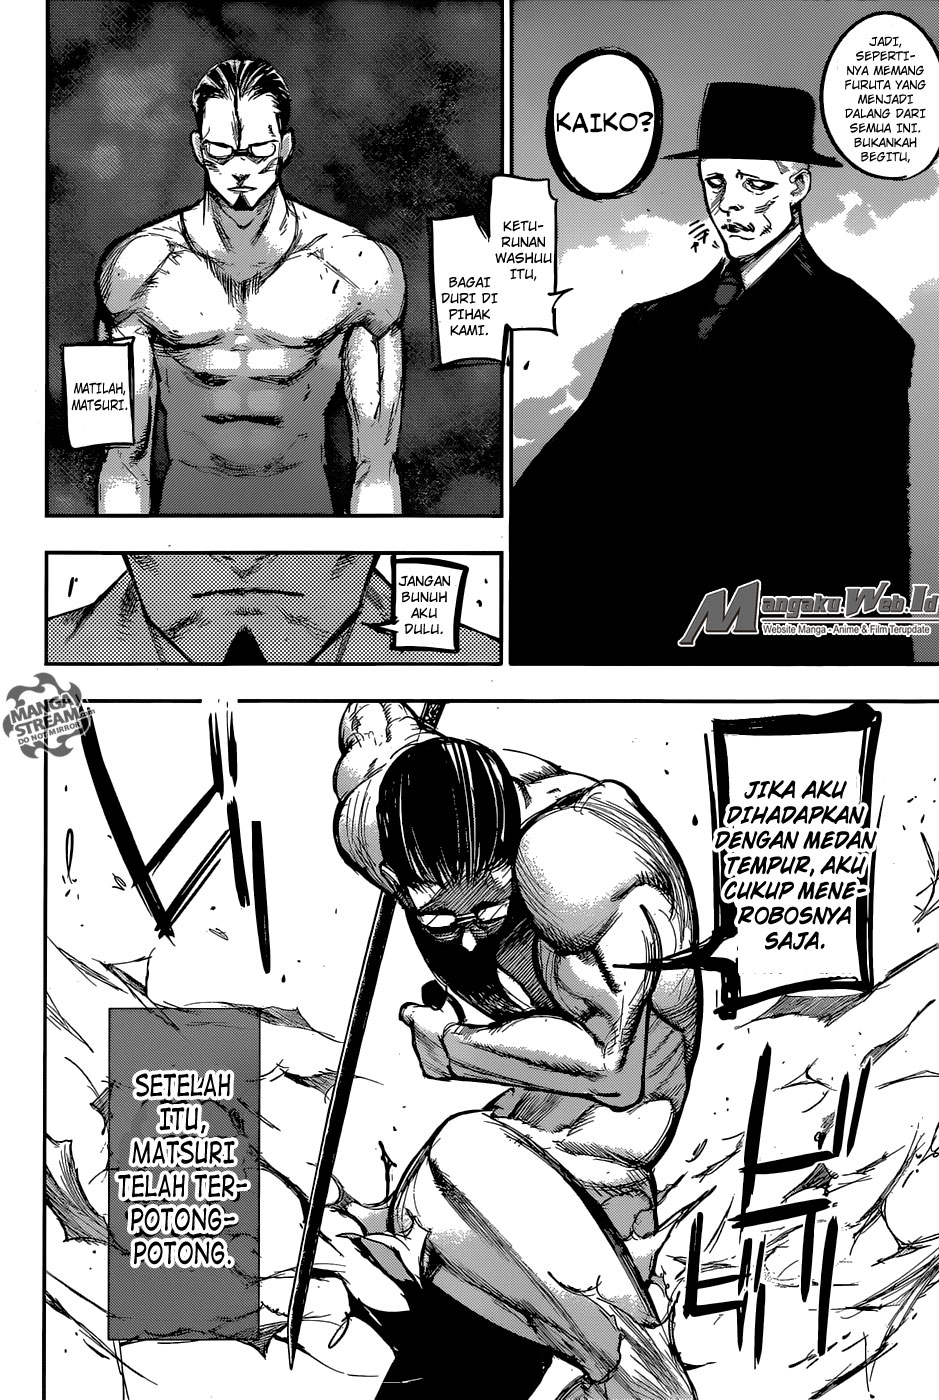 Tokyo Ghoul:re Chapter 116-5